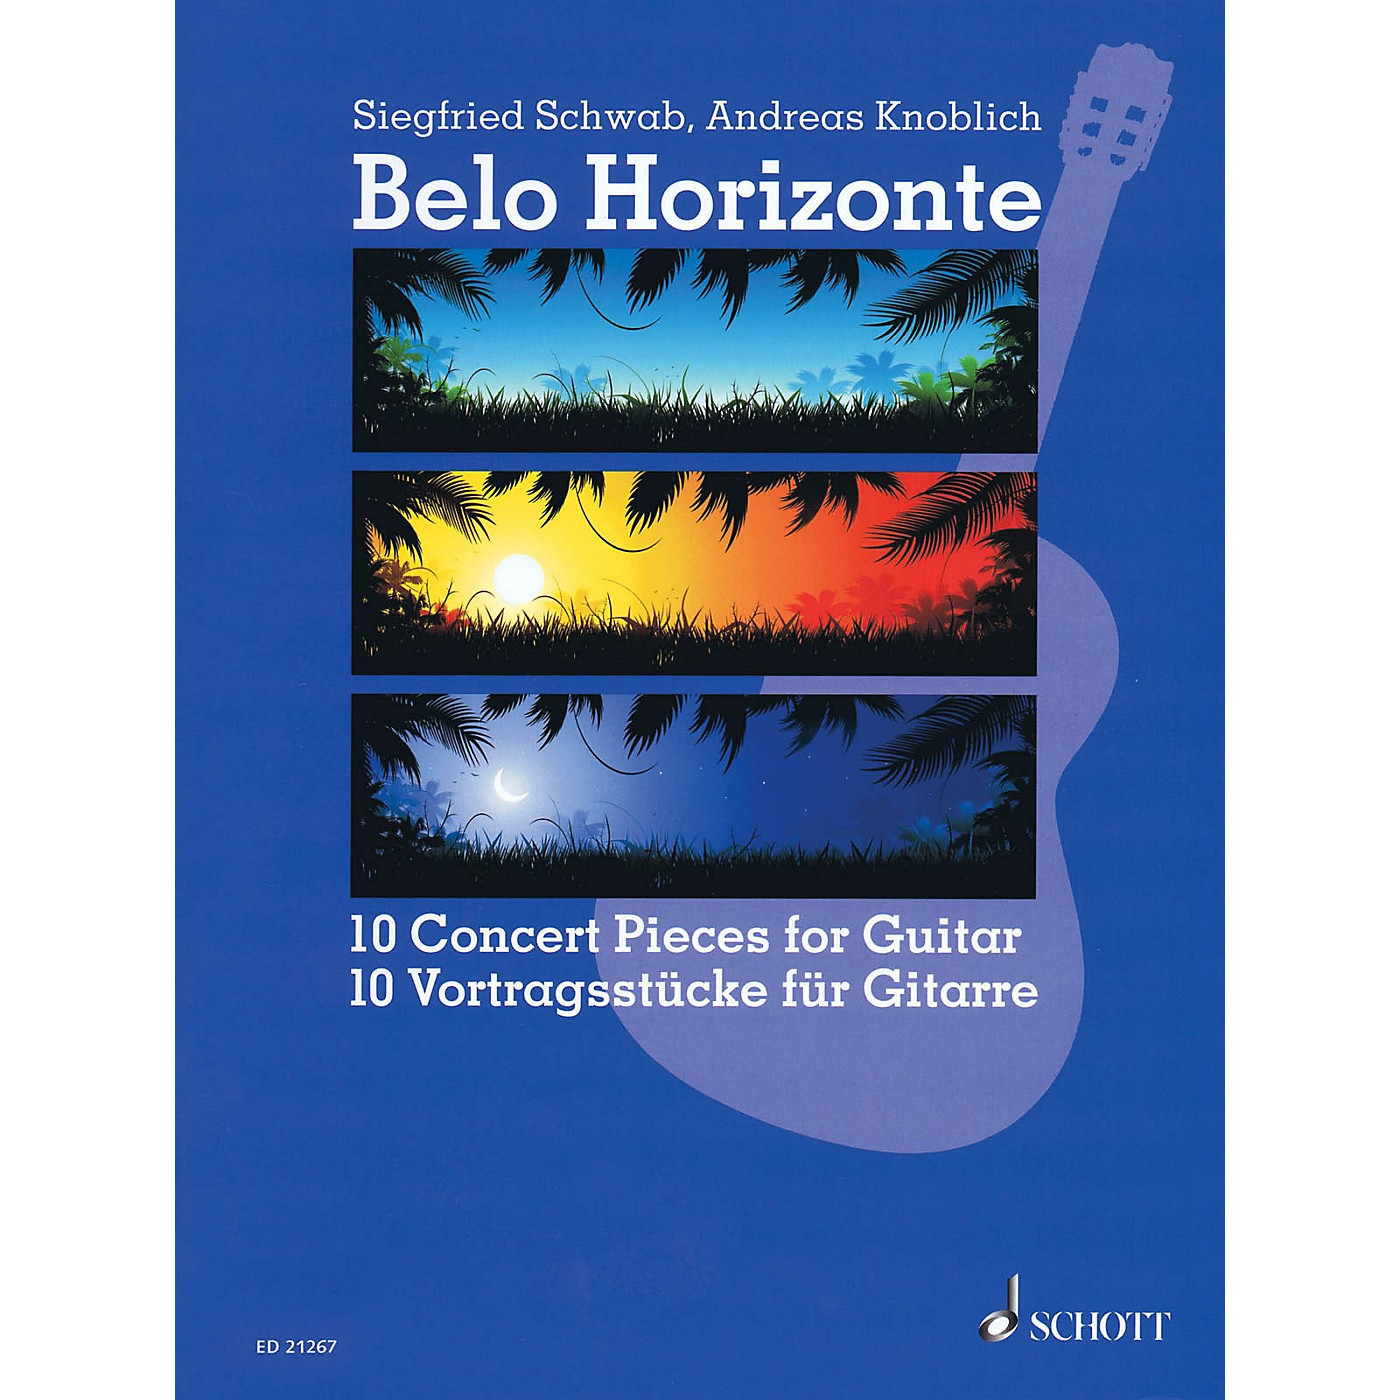 Schott Belo Horizonte (Beautiful Horizon) (10 Concert Pieces for Guitar) Guitar Series Softcover thumbnail